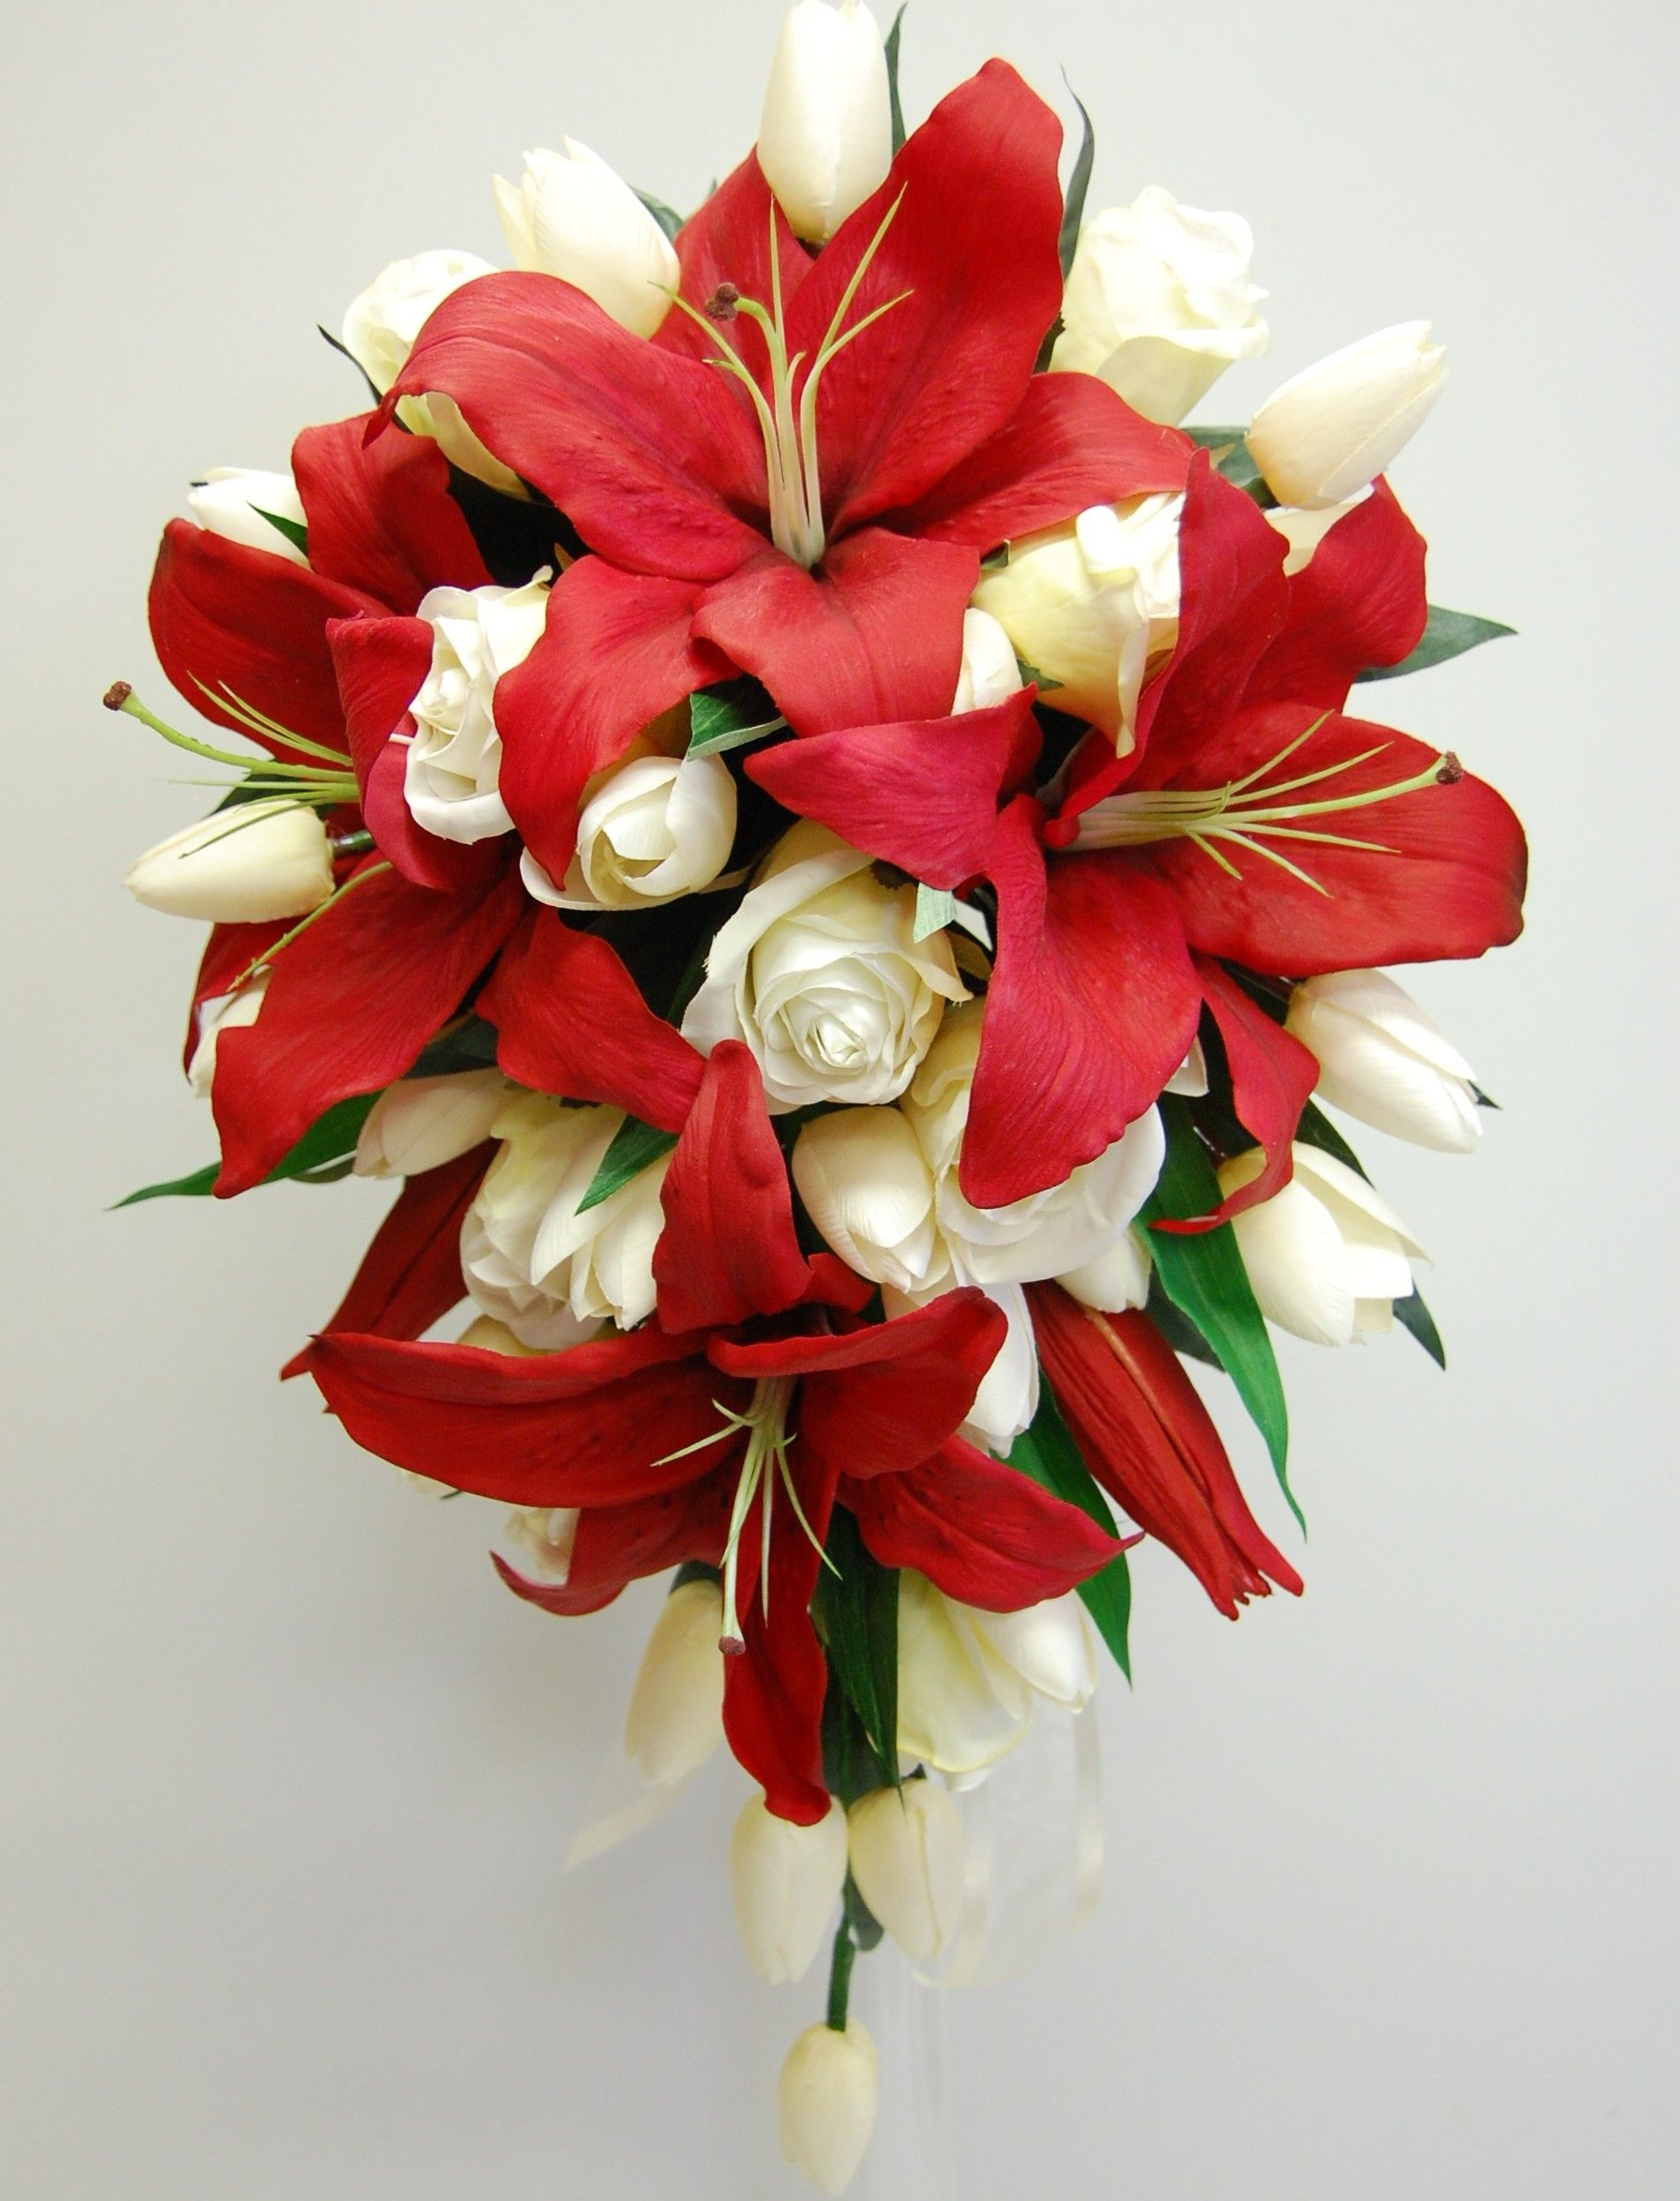 Red oriental lilies white roses and tulips teardrop wedding bouquet red oriental lilies white roses and tulips teardrop wedding bouquet izmirmasajfo